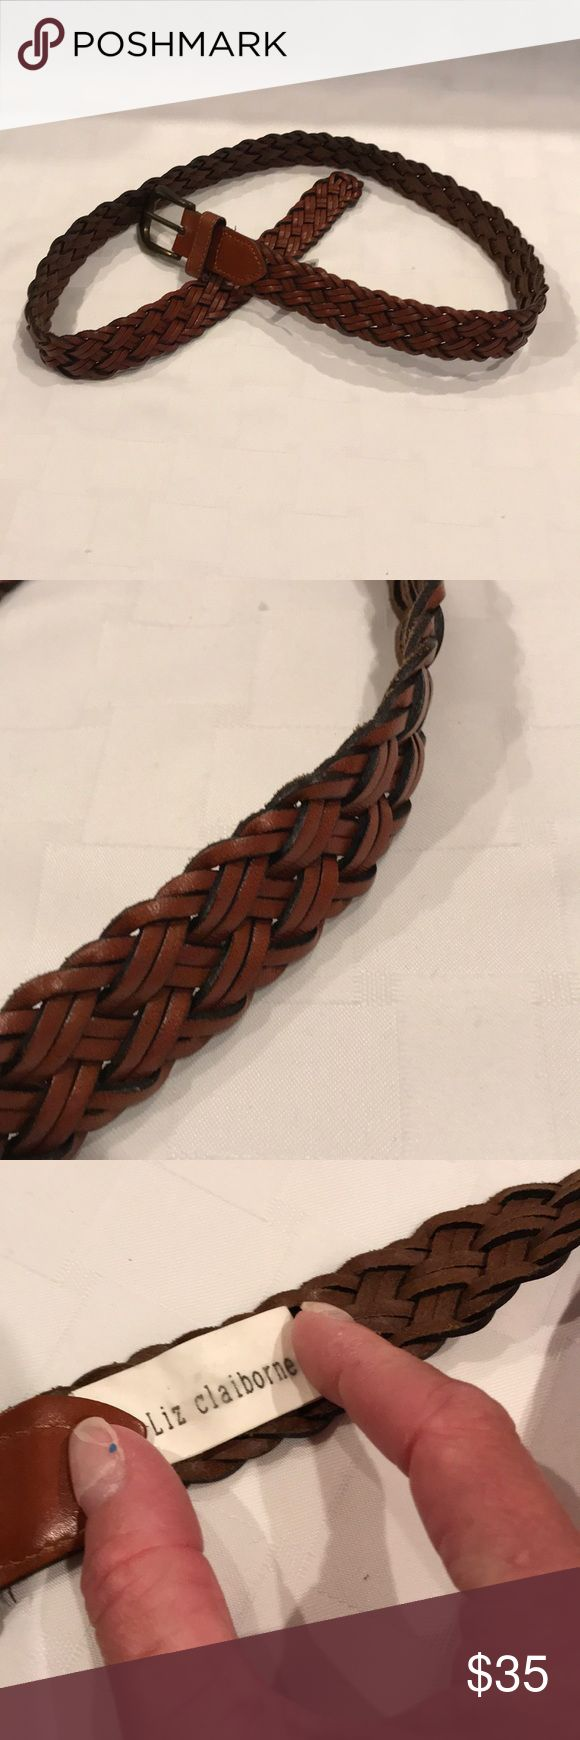 Leather Braided Belt BNWOT Brown Leather Braided Belt. Great to wear with any casual occasion. Free gift with purchase🎁 Liz Claiborne Accessories Belts